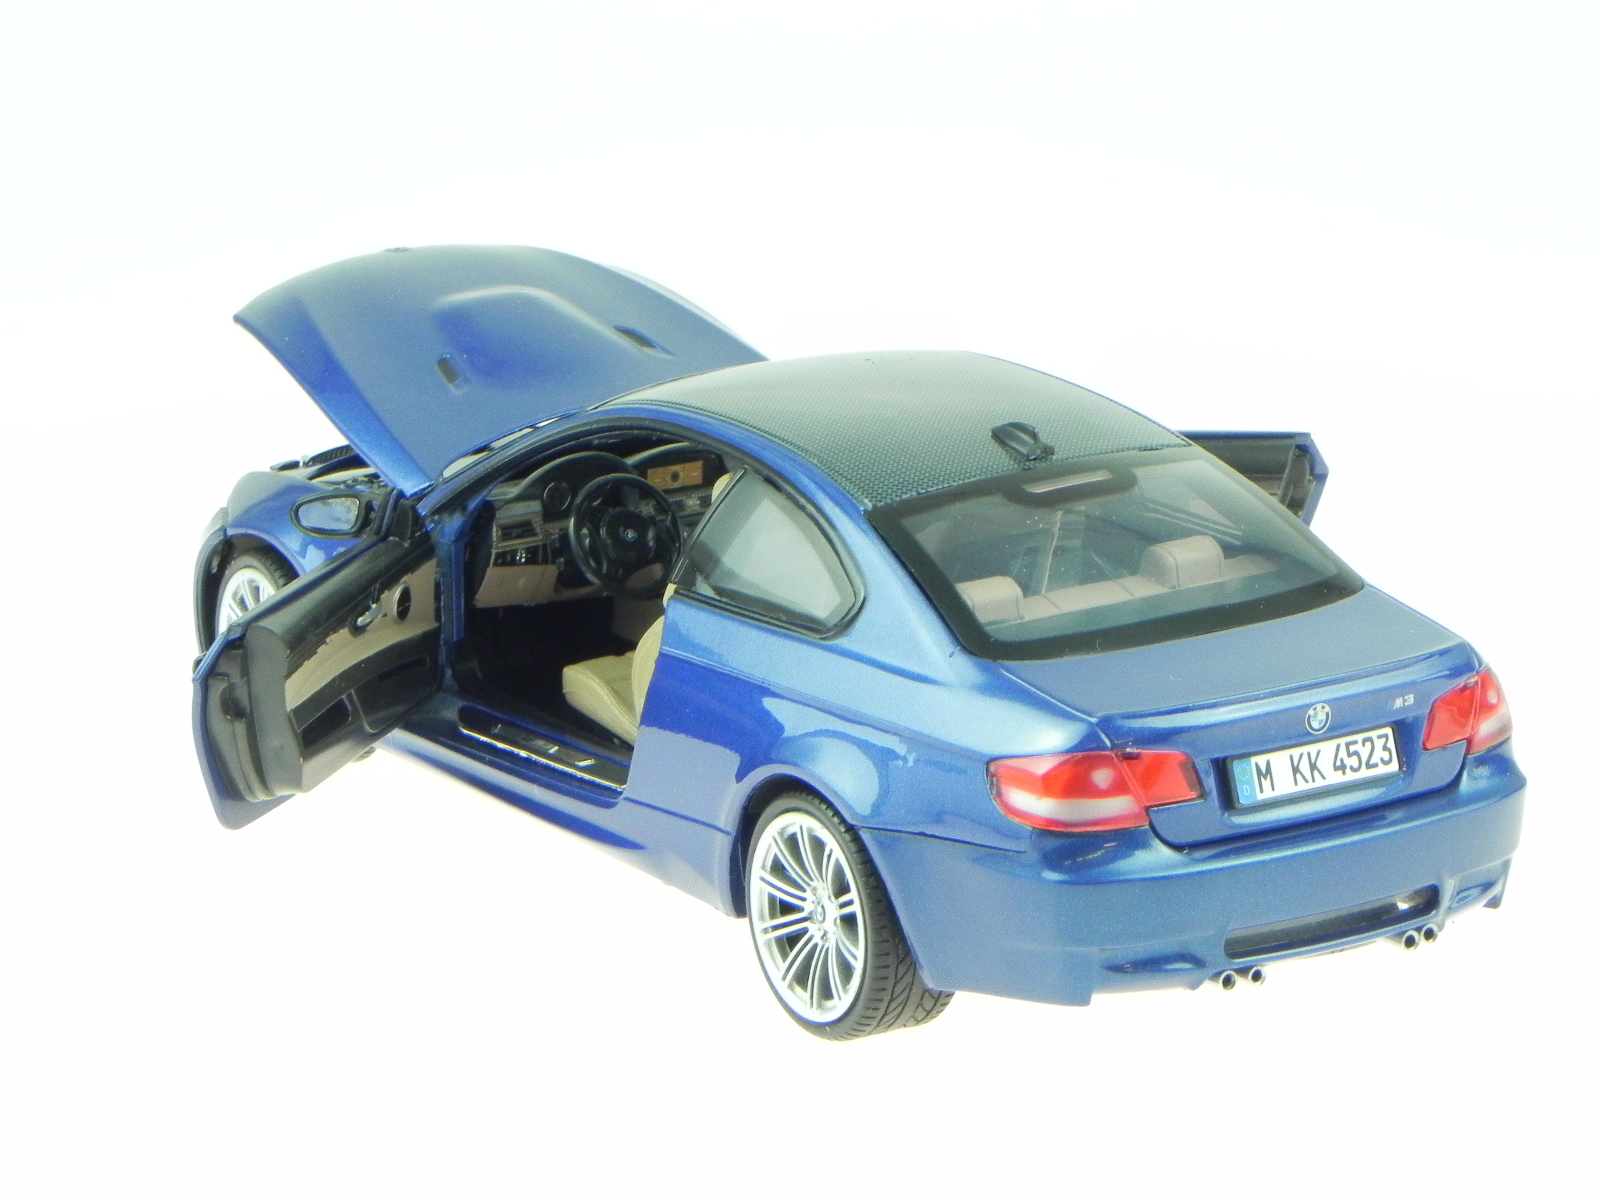 bmw e92 m3 coupe blue diecast model car 73182 motormax 1/18